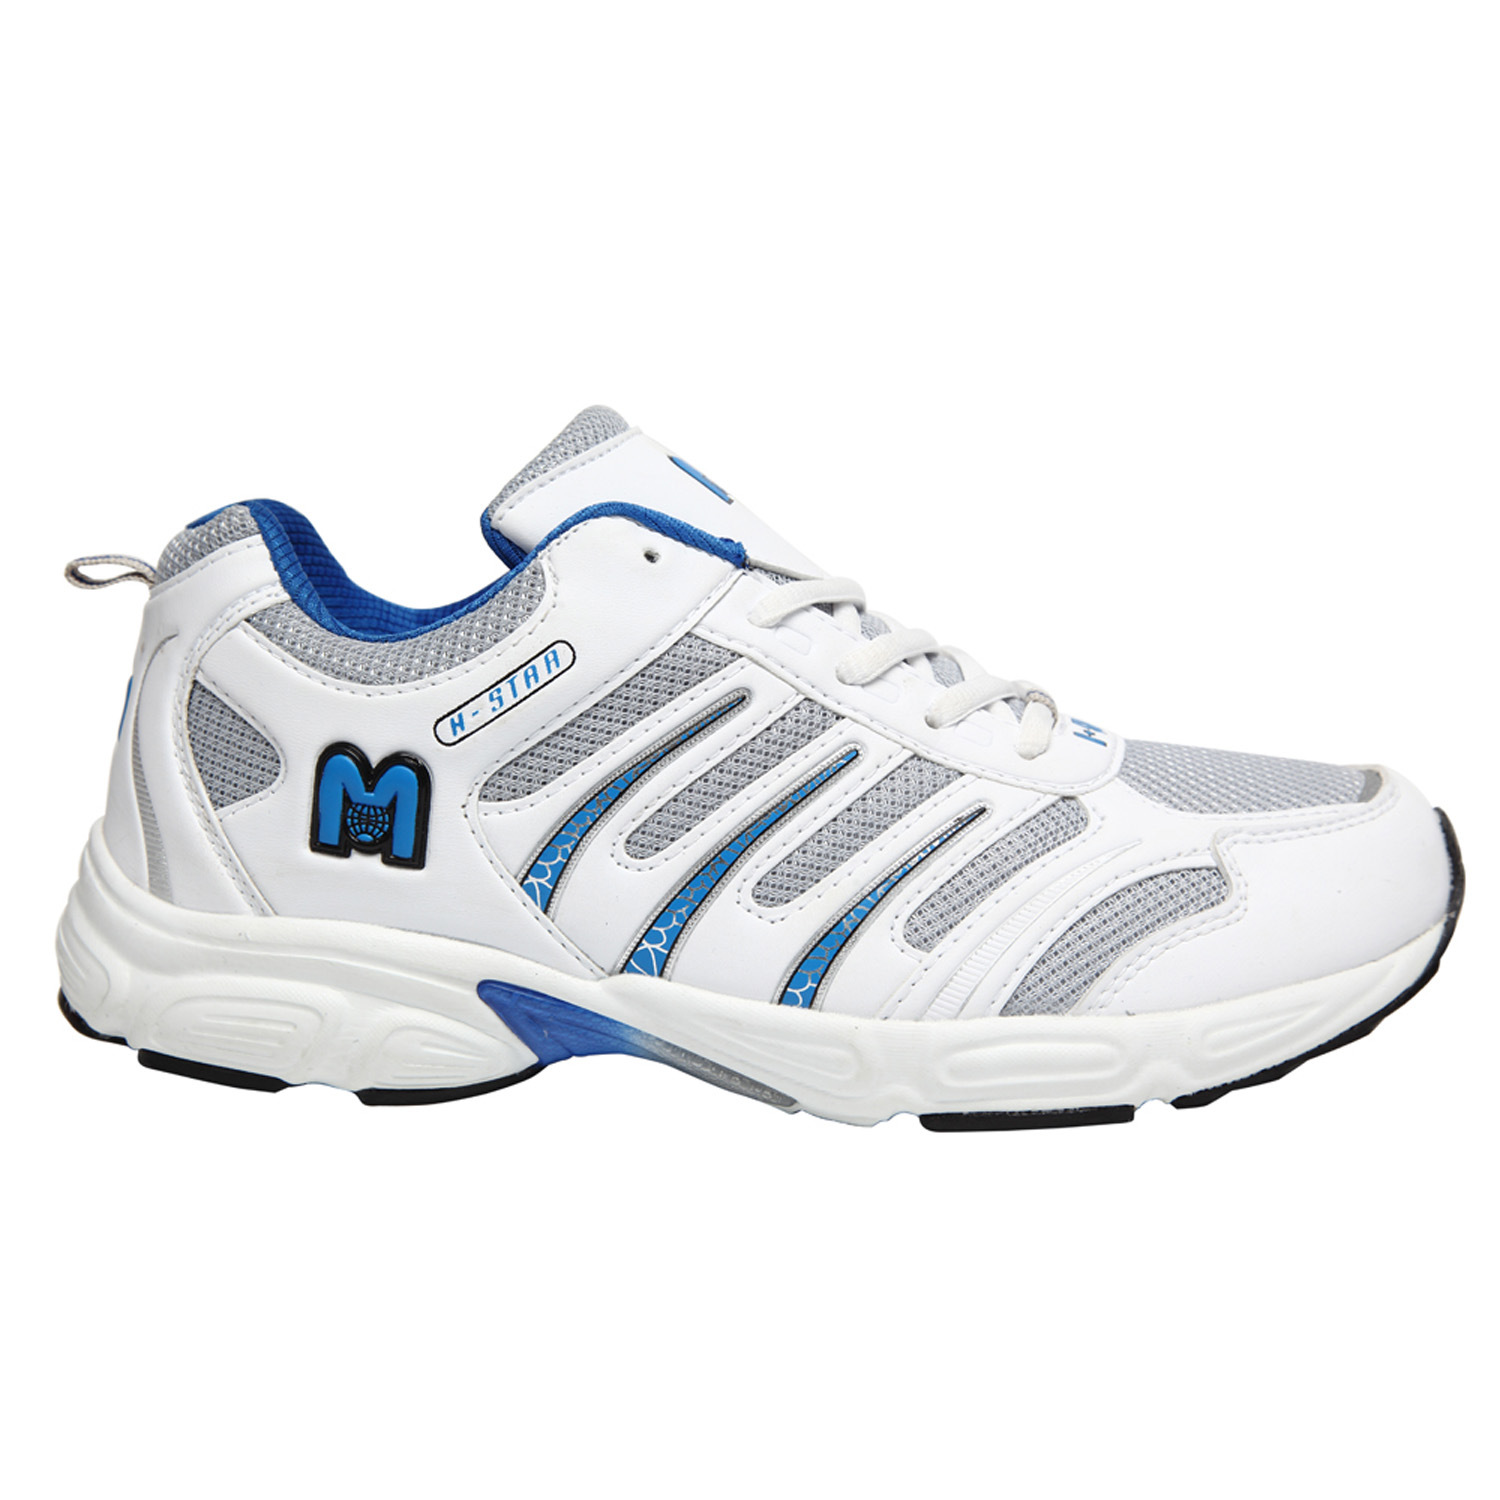 Sports Shoes (ysd-s1249)